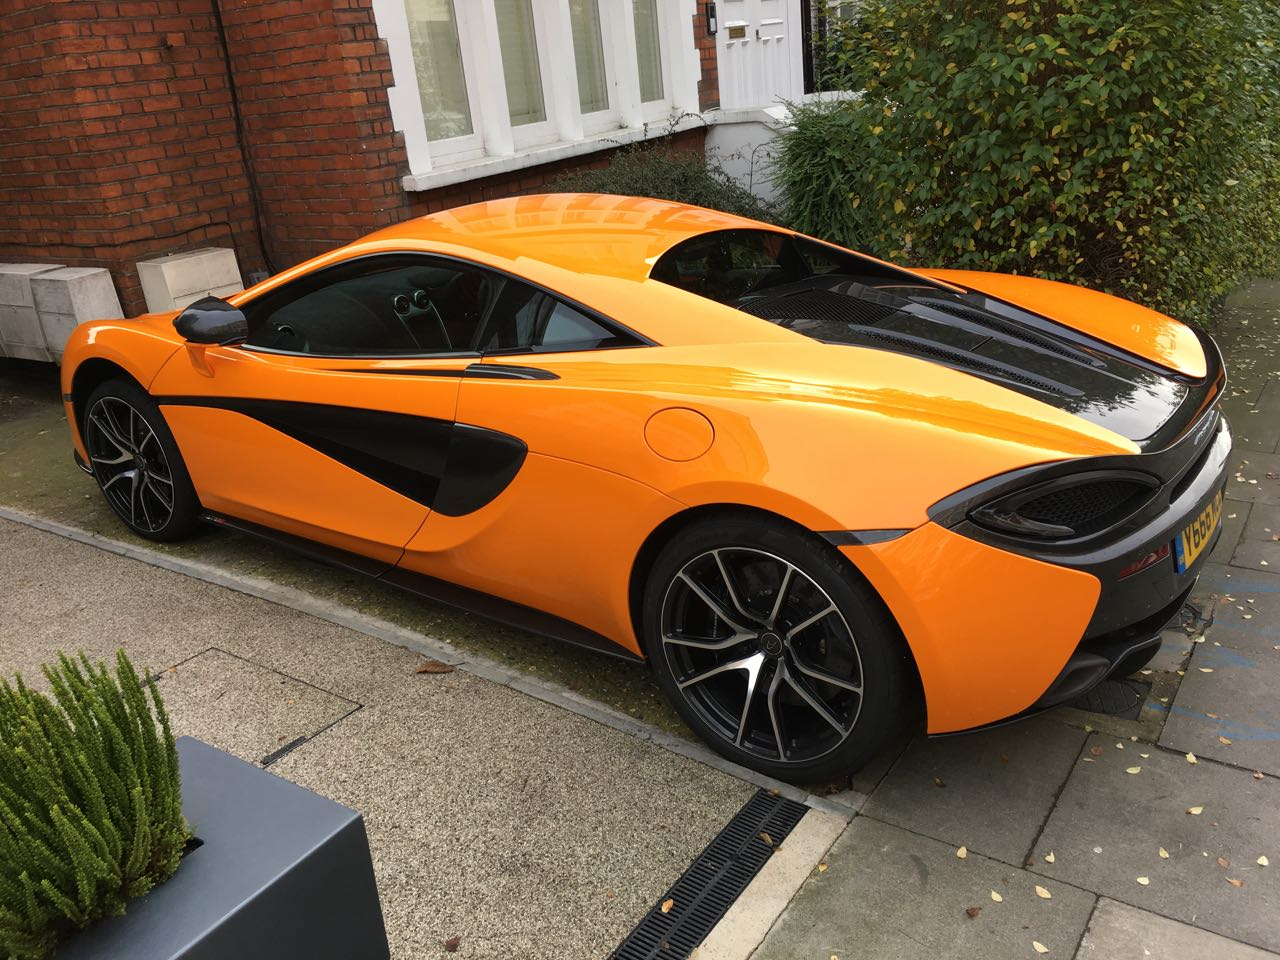 Another Series Of Random Pictures From My IPhone, Collected Over The Past  Few Weeks. First, I Noticed This Flashy Car Parked Near Our House. Itu0027s A  McLaren ...